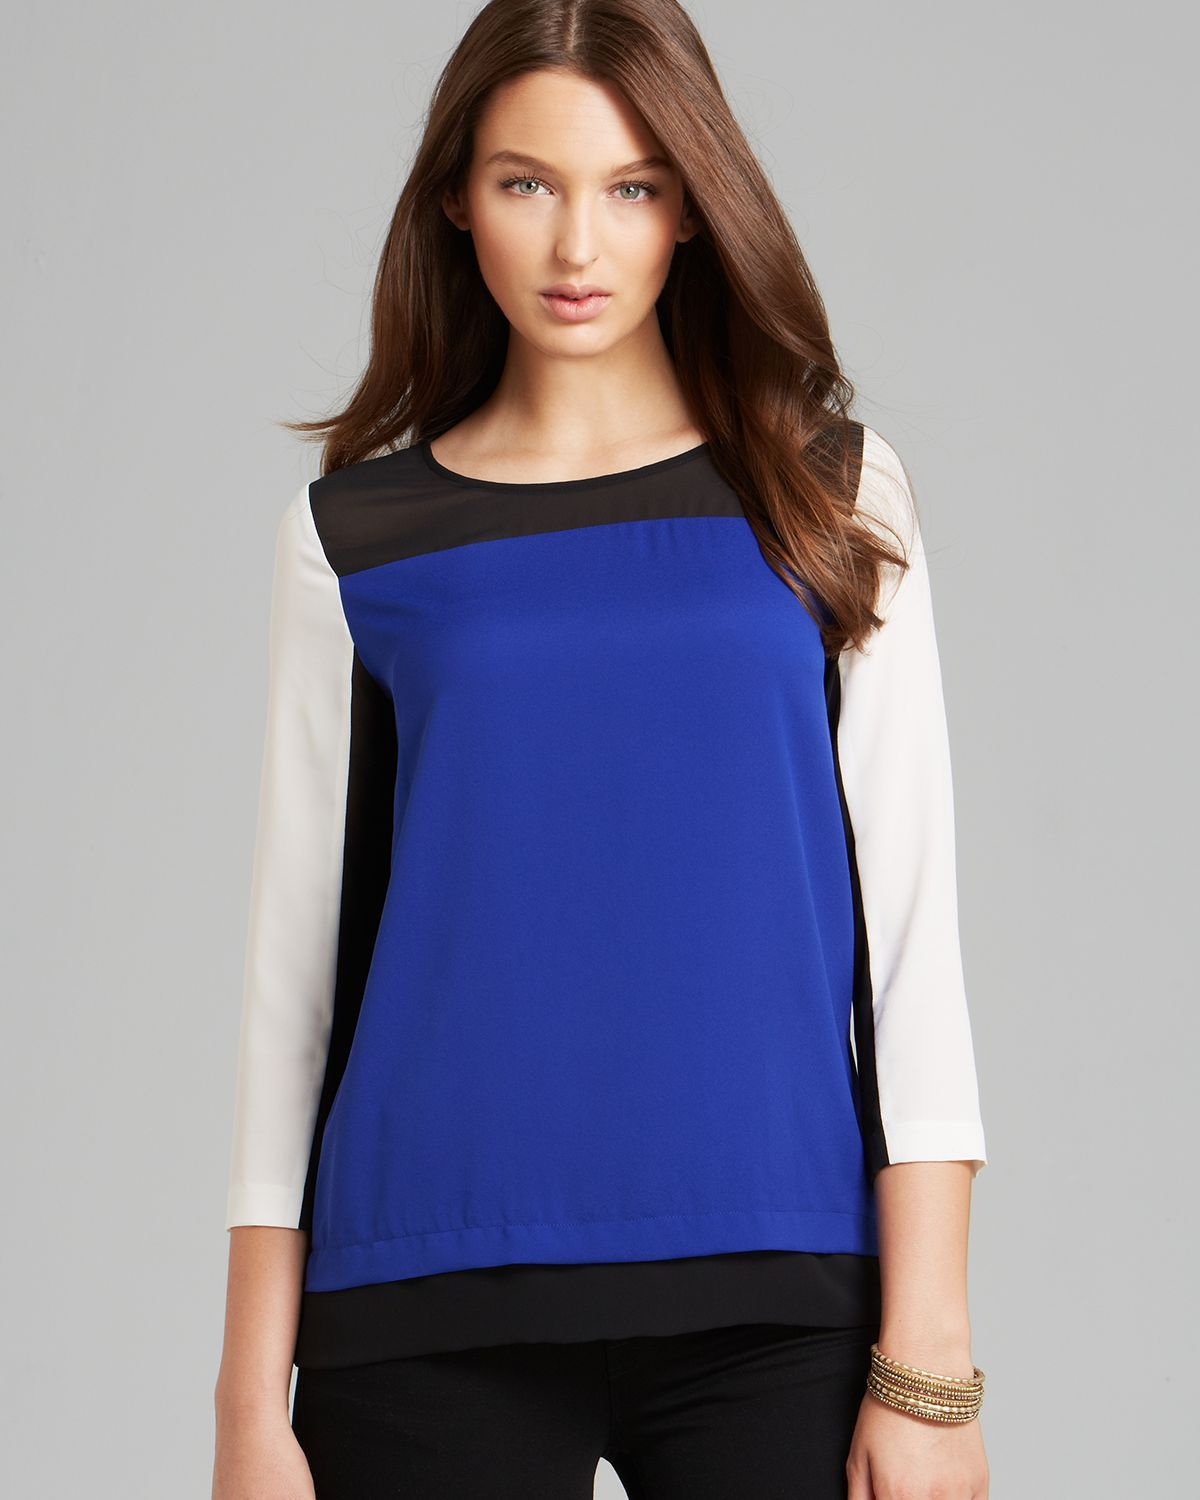 http://www.lyst.com/clothing/dkny-three-quarter-sleeve-color-block-blouse-lapis/?product-gallery=19583856